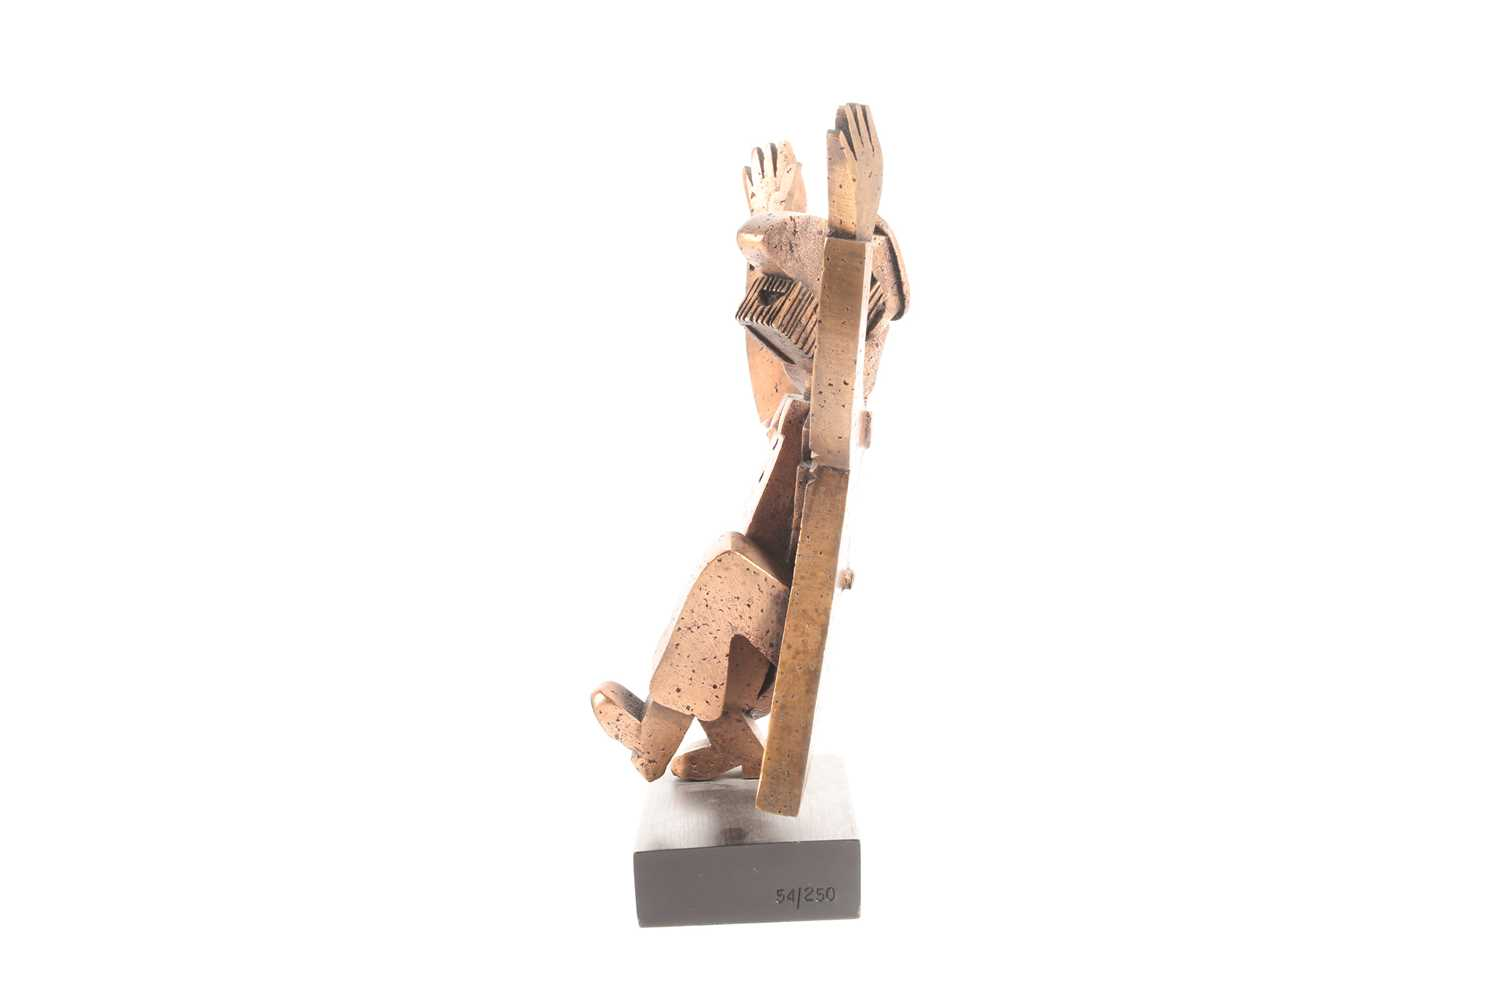 Frank Meisler (1929-2018) Israel, an abstract bronzed metal sculpture of a Rabbi, standing on a - Image 5 of 6